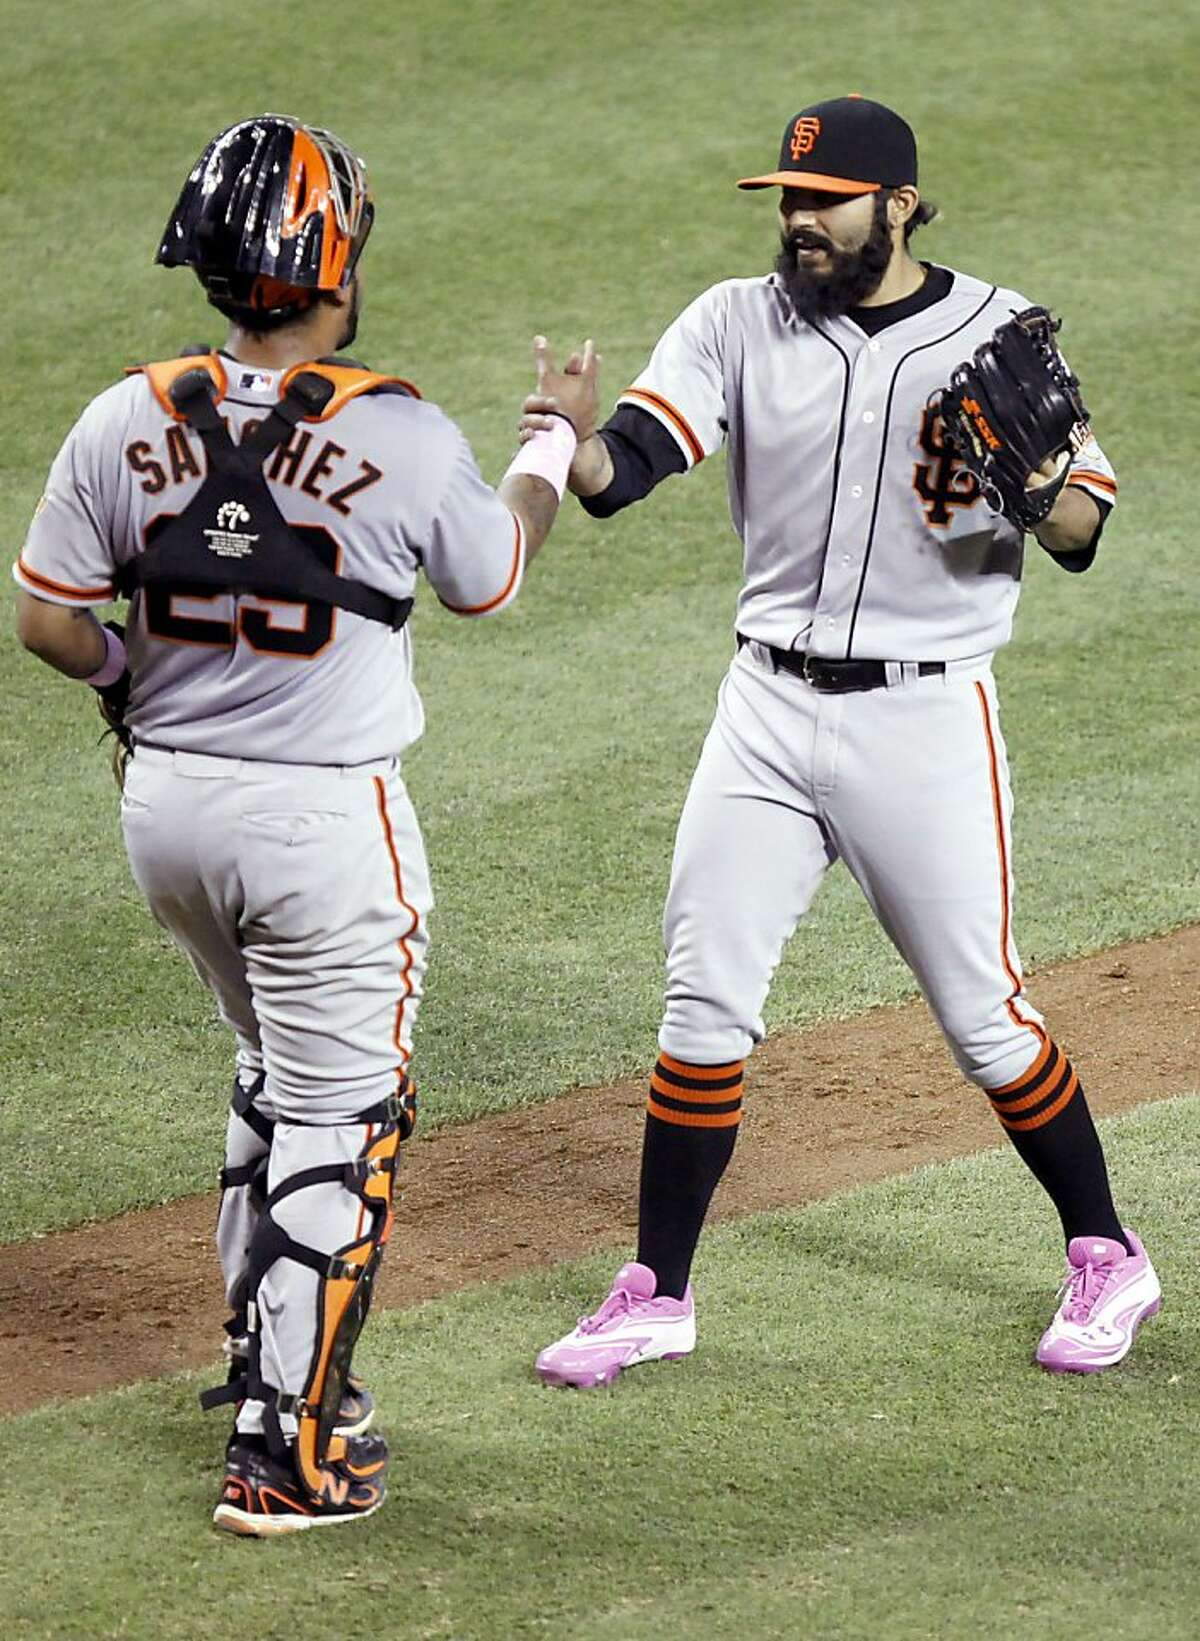 San Francisco Giants pitcher Sergio Romo, right, is congratulated by catcher Hector Sanchez, left, after defeating the Arizona Diamondbacks in the ninth inning of a baseball game Sunday, May 13, 2012, in Phoenix. The Giants won 7-3.(AP Photo/Paul Connors)